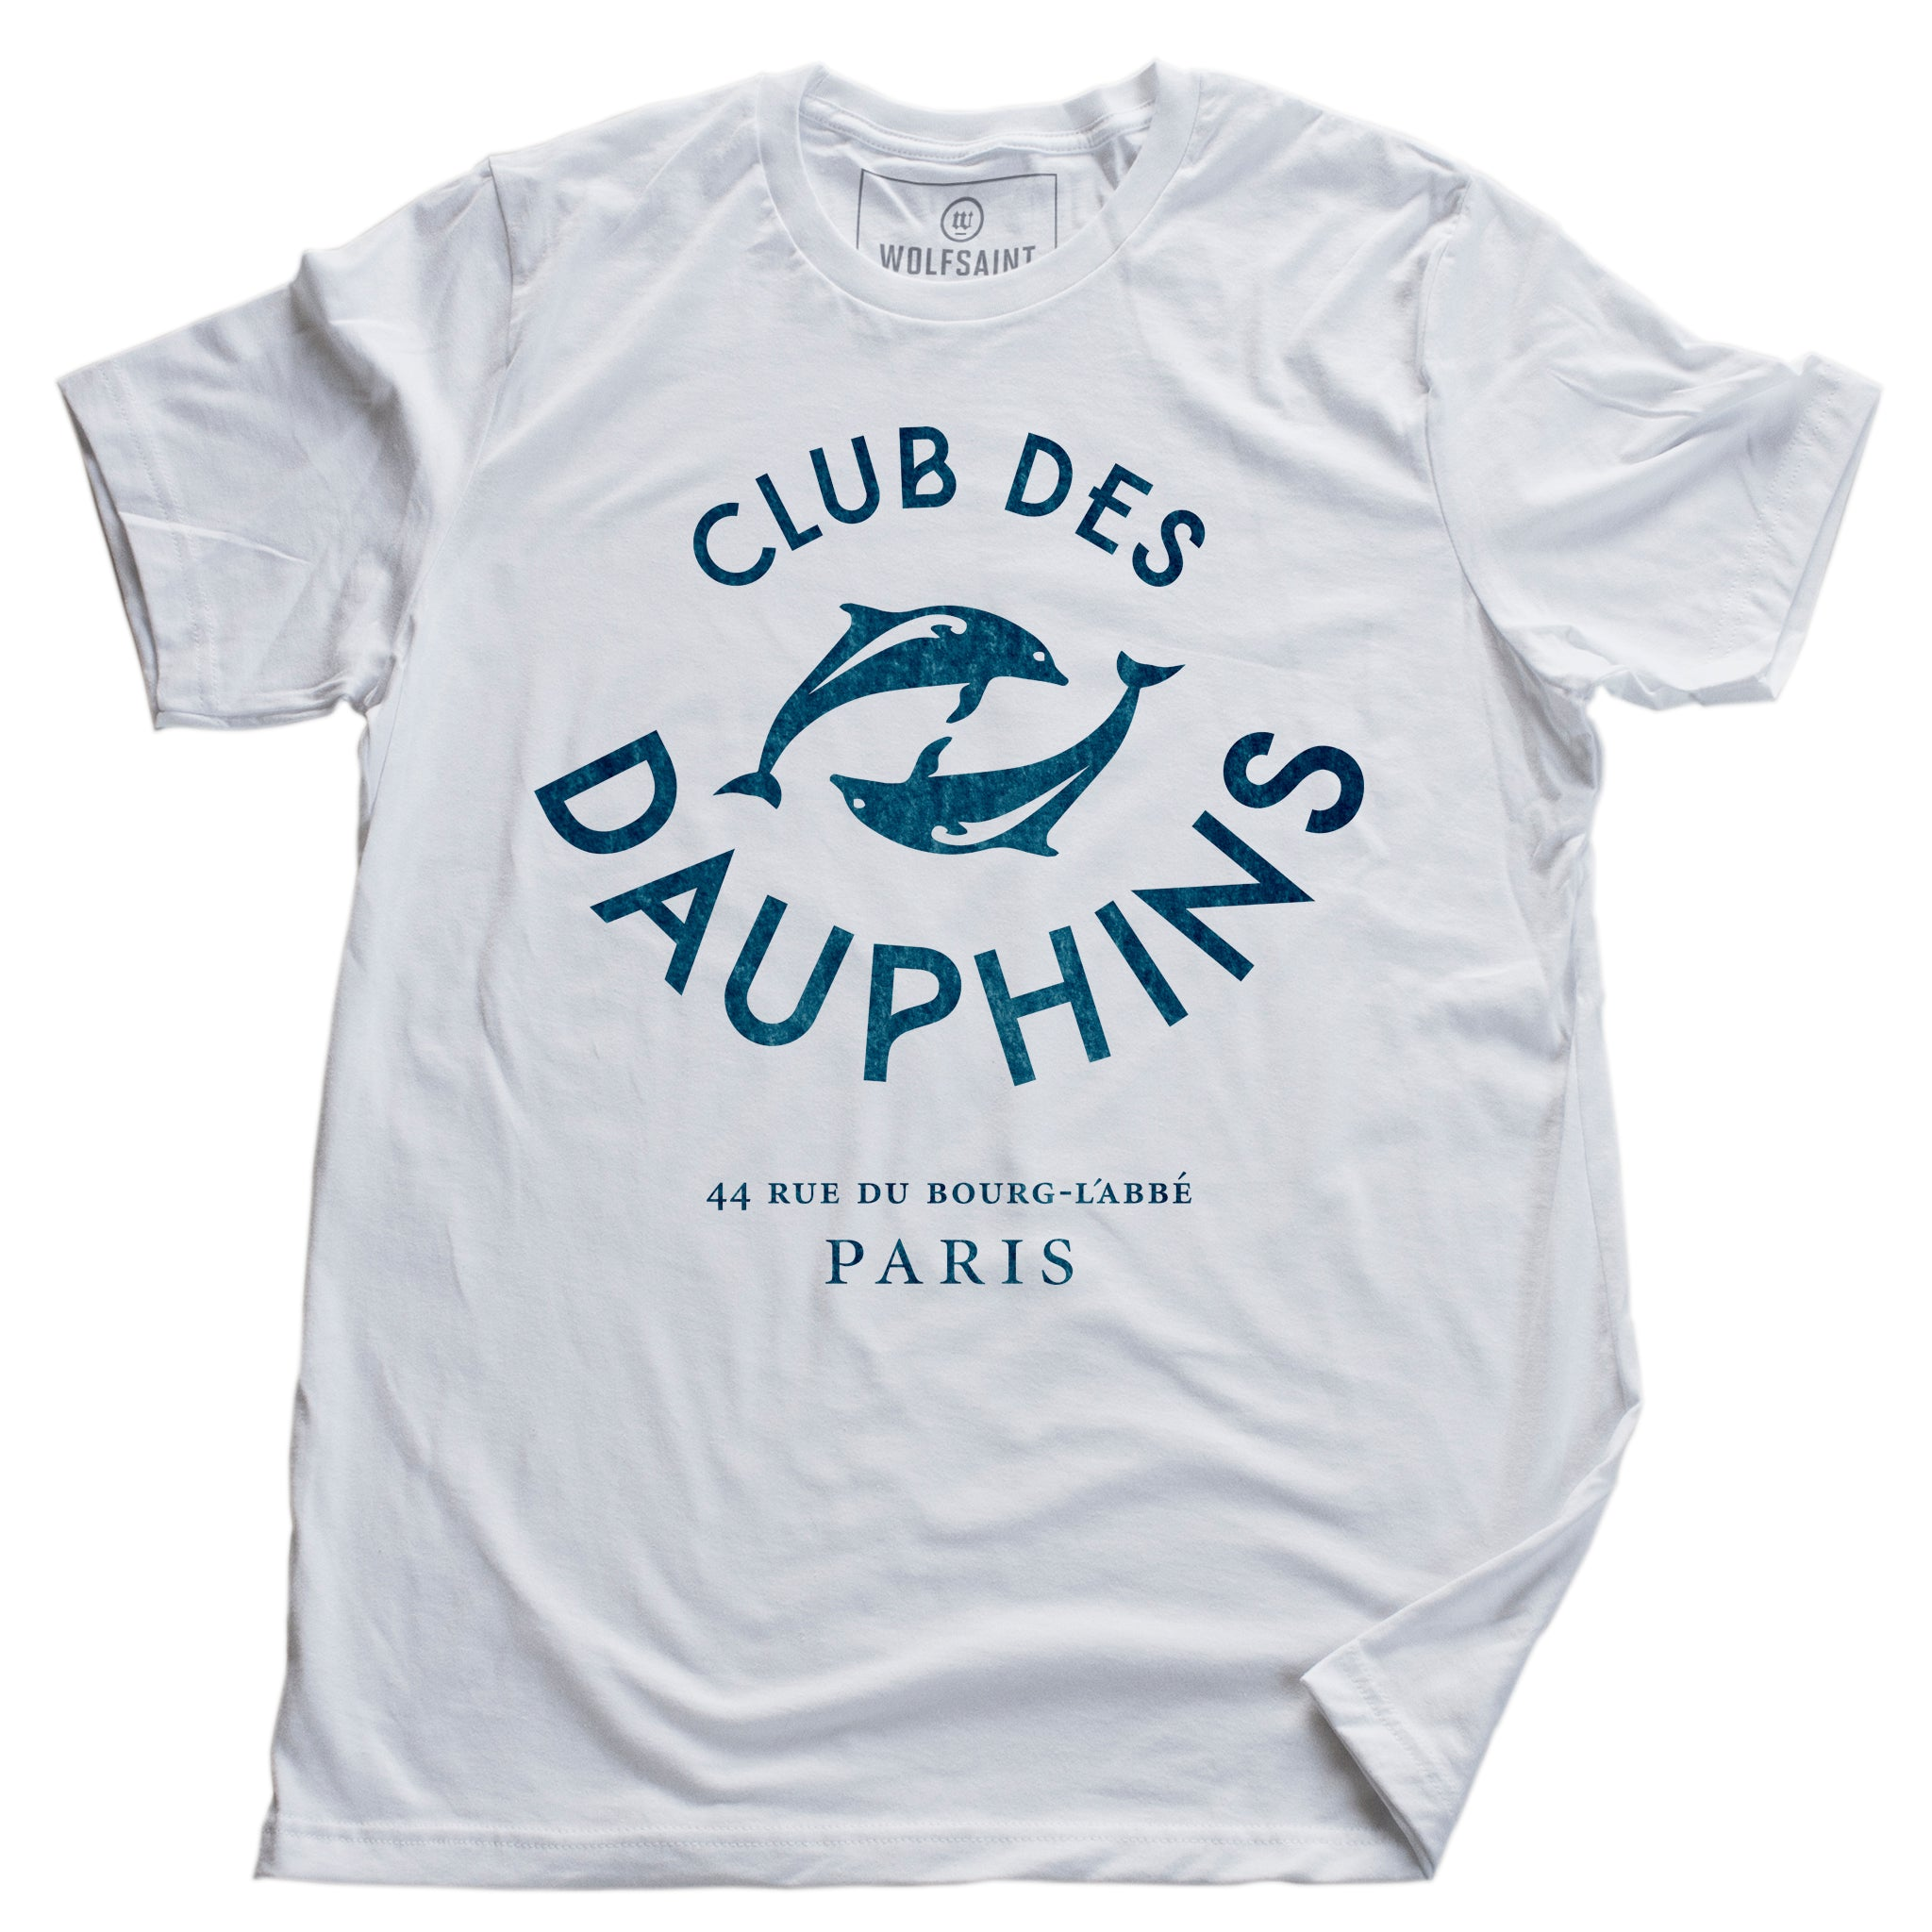 "A vintage-inspired fashion t-shirt featuring a retro graphic of two dolphins, surrounded by the words ""CLUB DES DAUPHINS,"" or Dolphin Club in French, a fictitious club in Paris, France. By fashion brand Wolfsaint. From Wolfsaint.net"